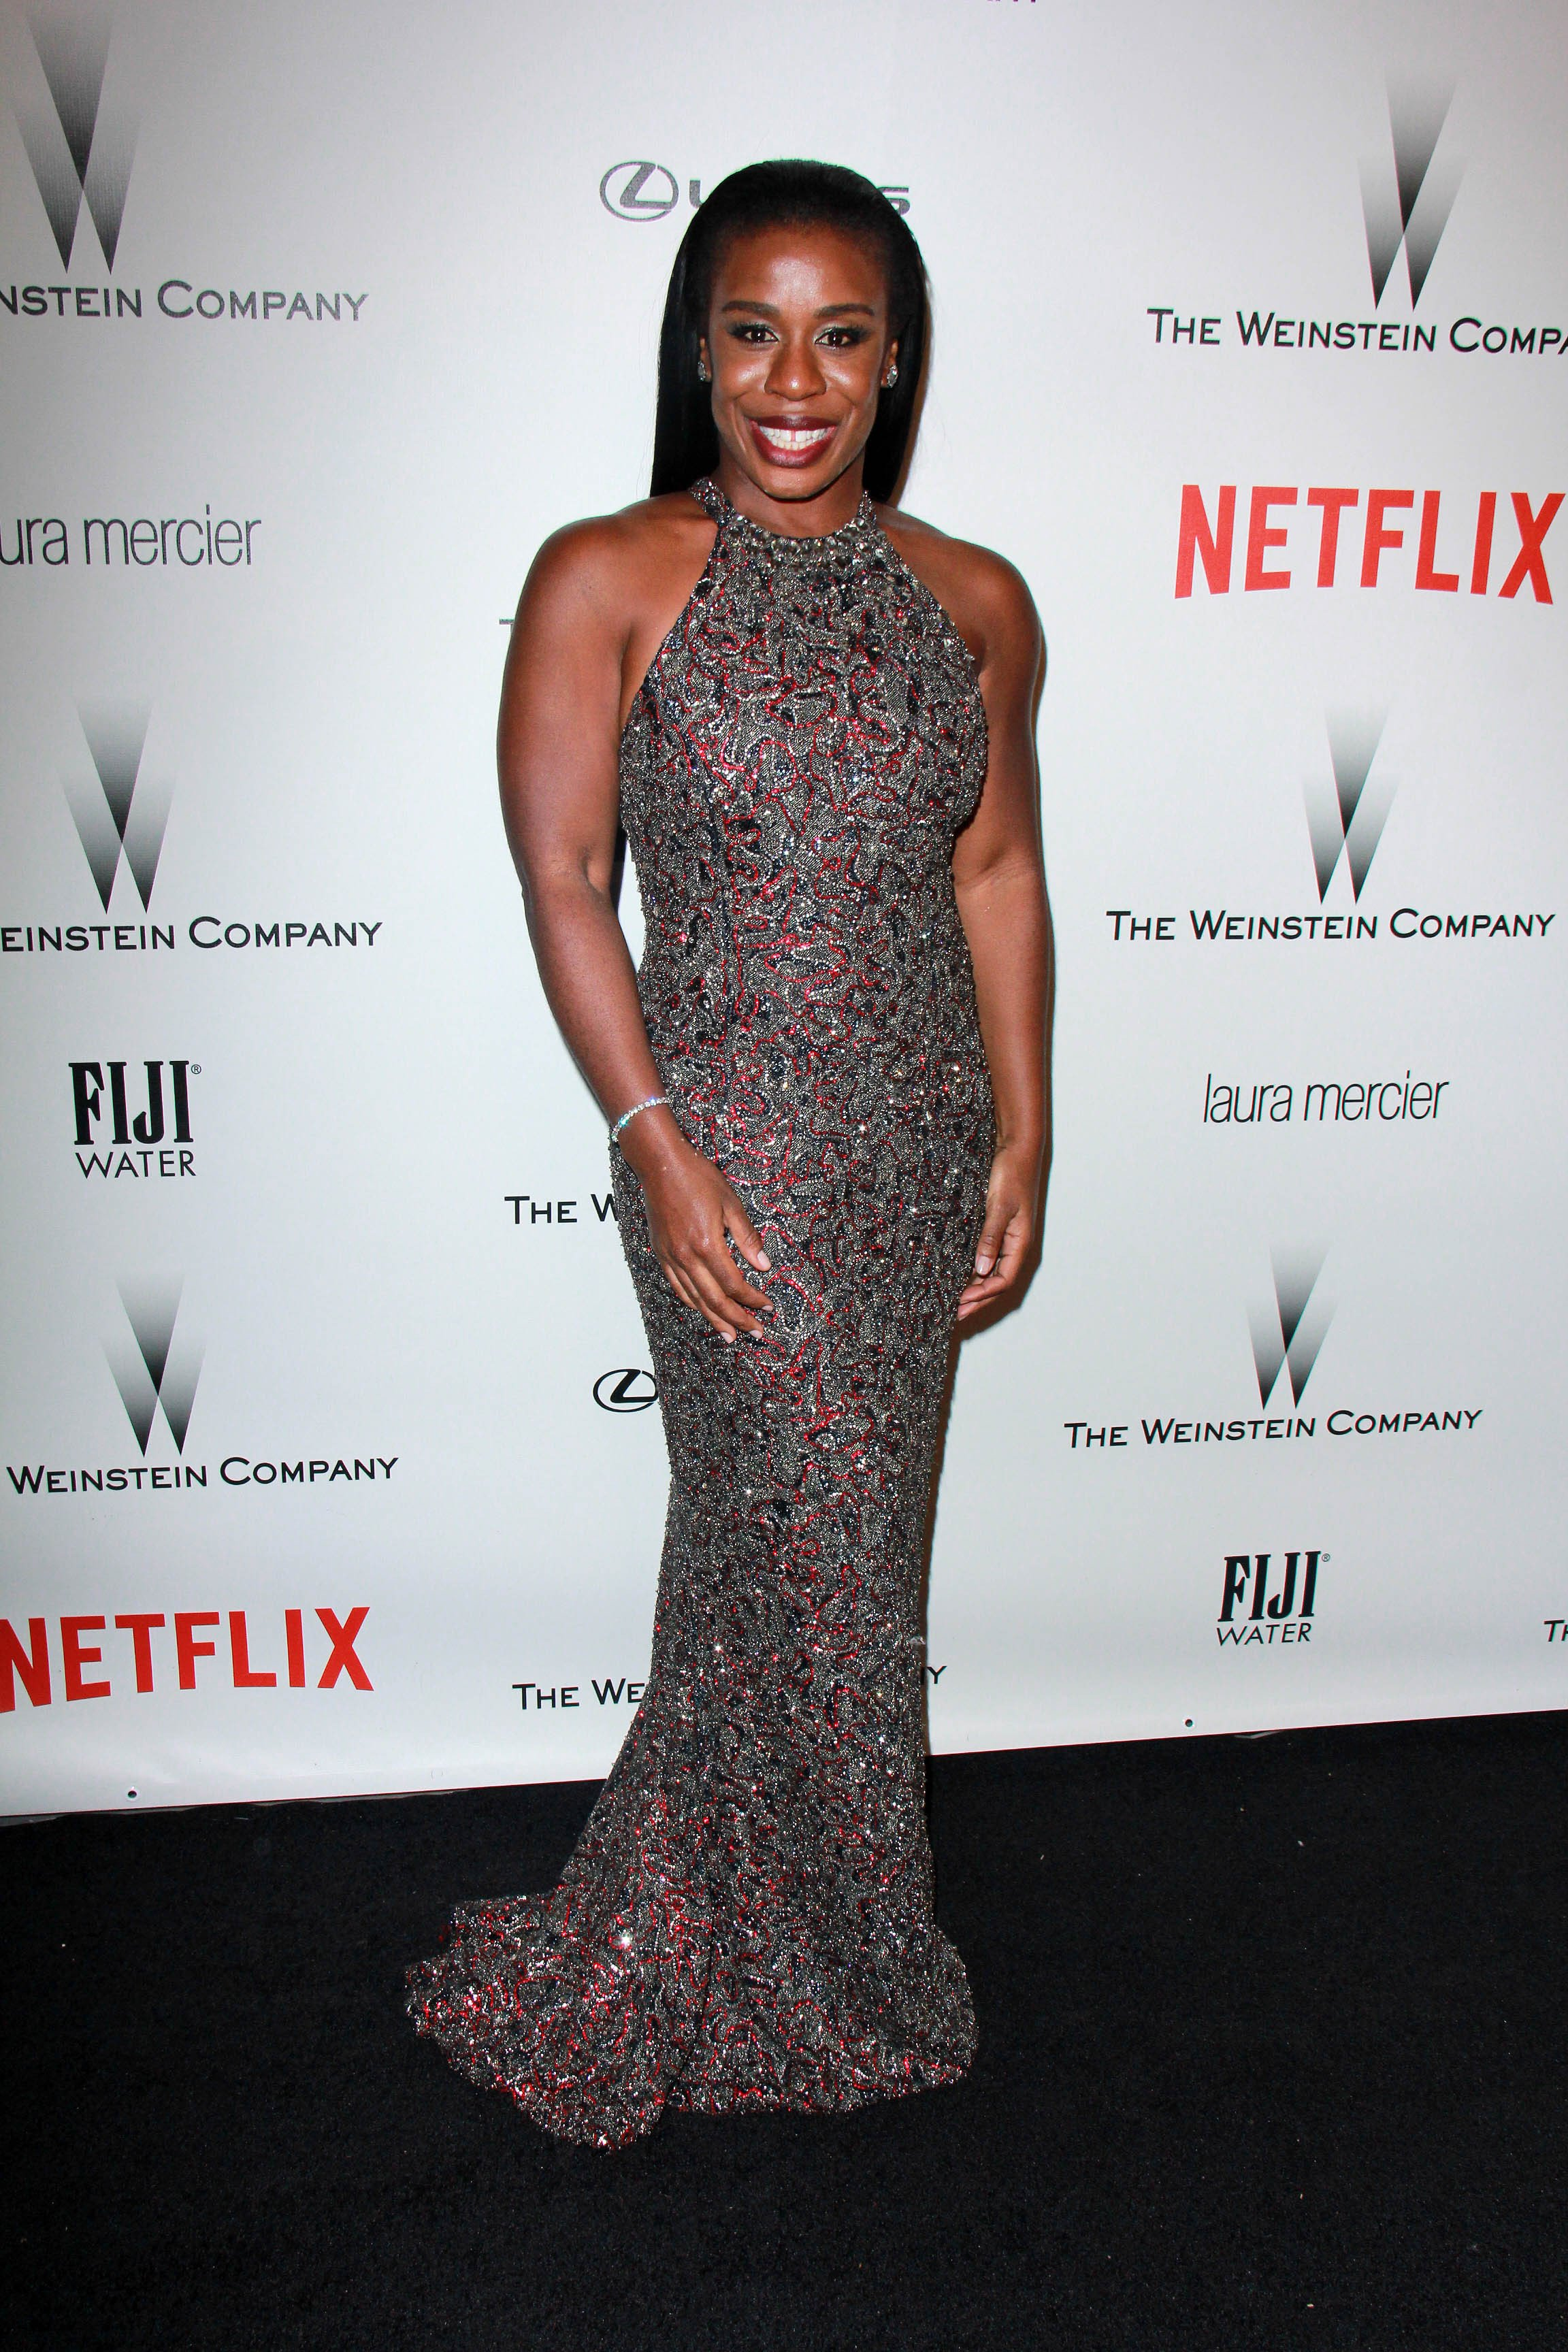 Uzo Aduba at the The Weinstein Company / Netflix Golden Globes After Party at a Beverly Hilton Adjacent on January 11, 2015 in Beverly Hills, California   Photo: Shutterstock